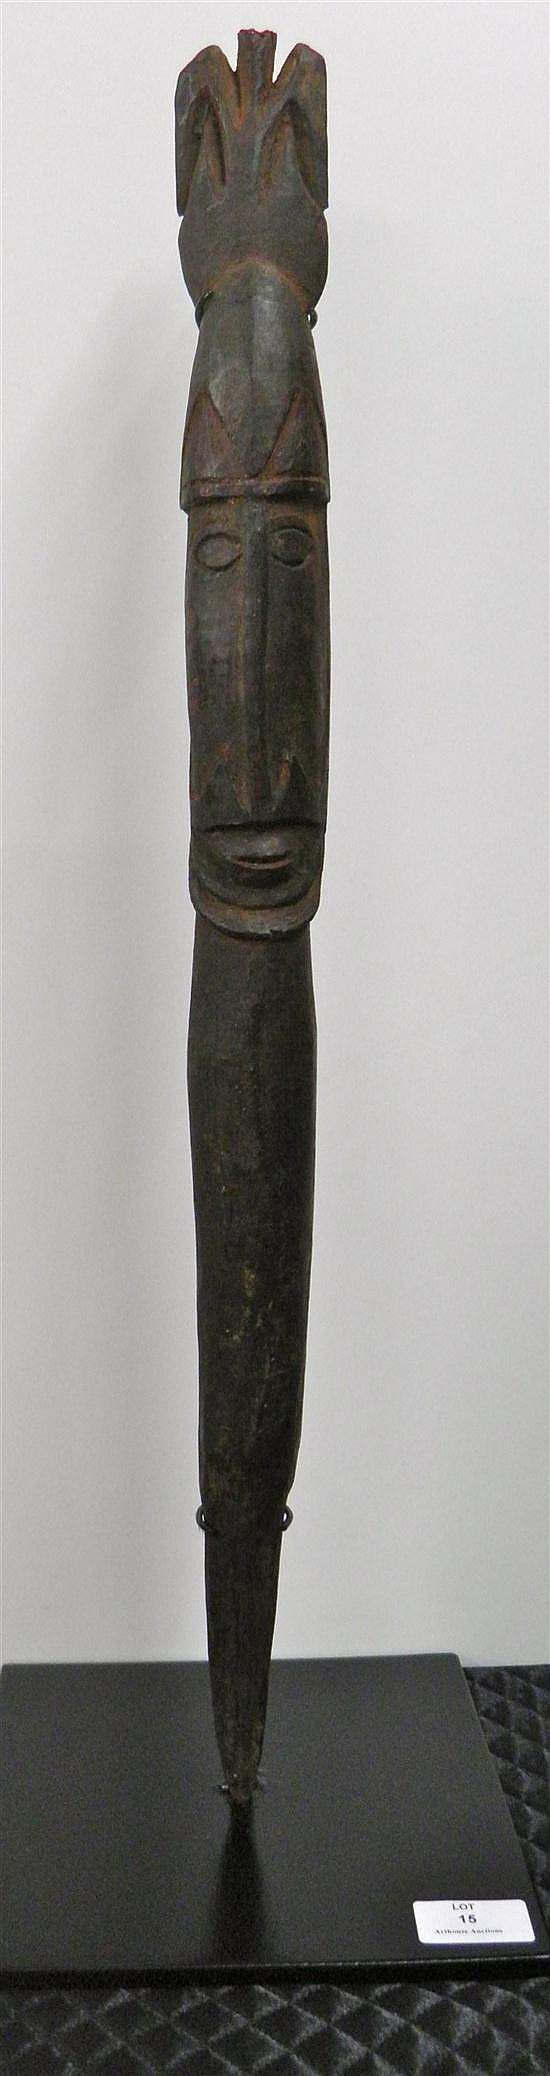 A VINTAGE HARDWOOD YAM MAKER FROM NEW GUINEA